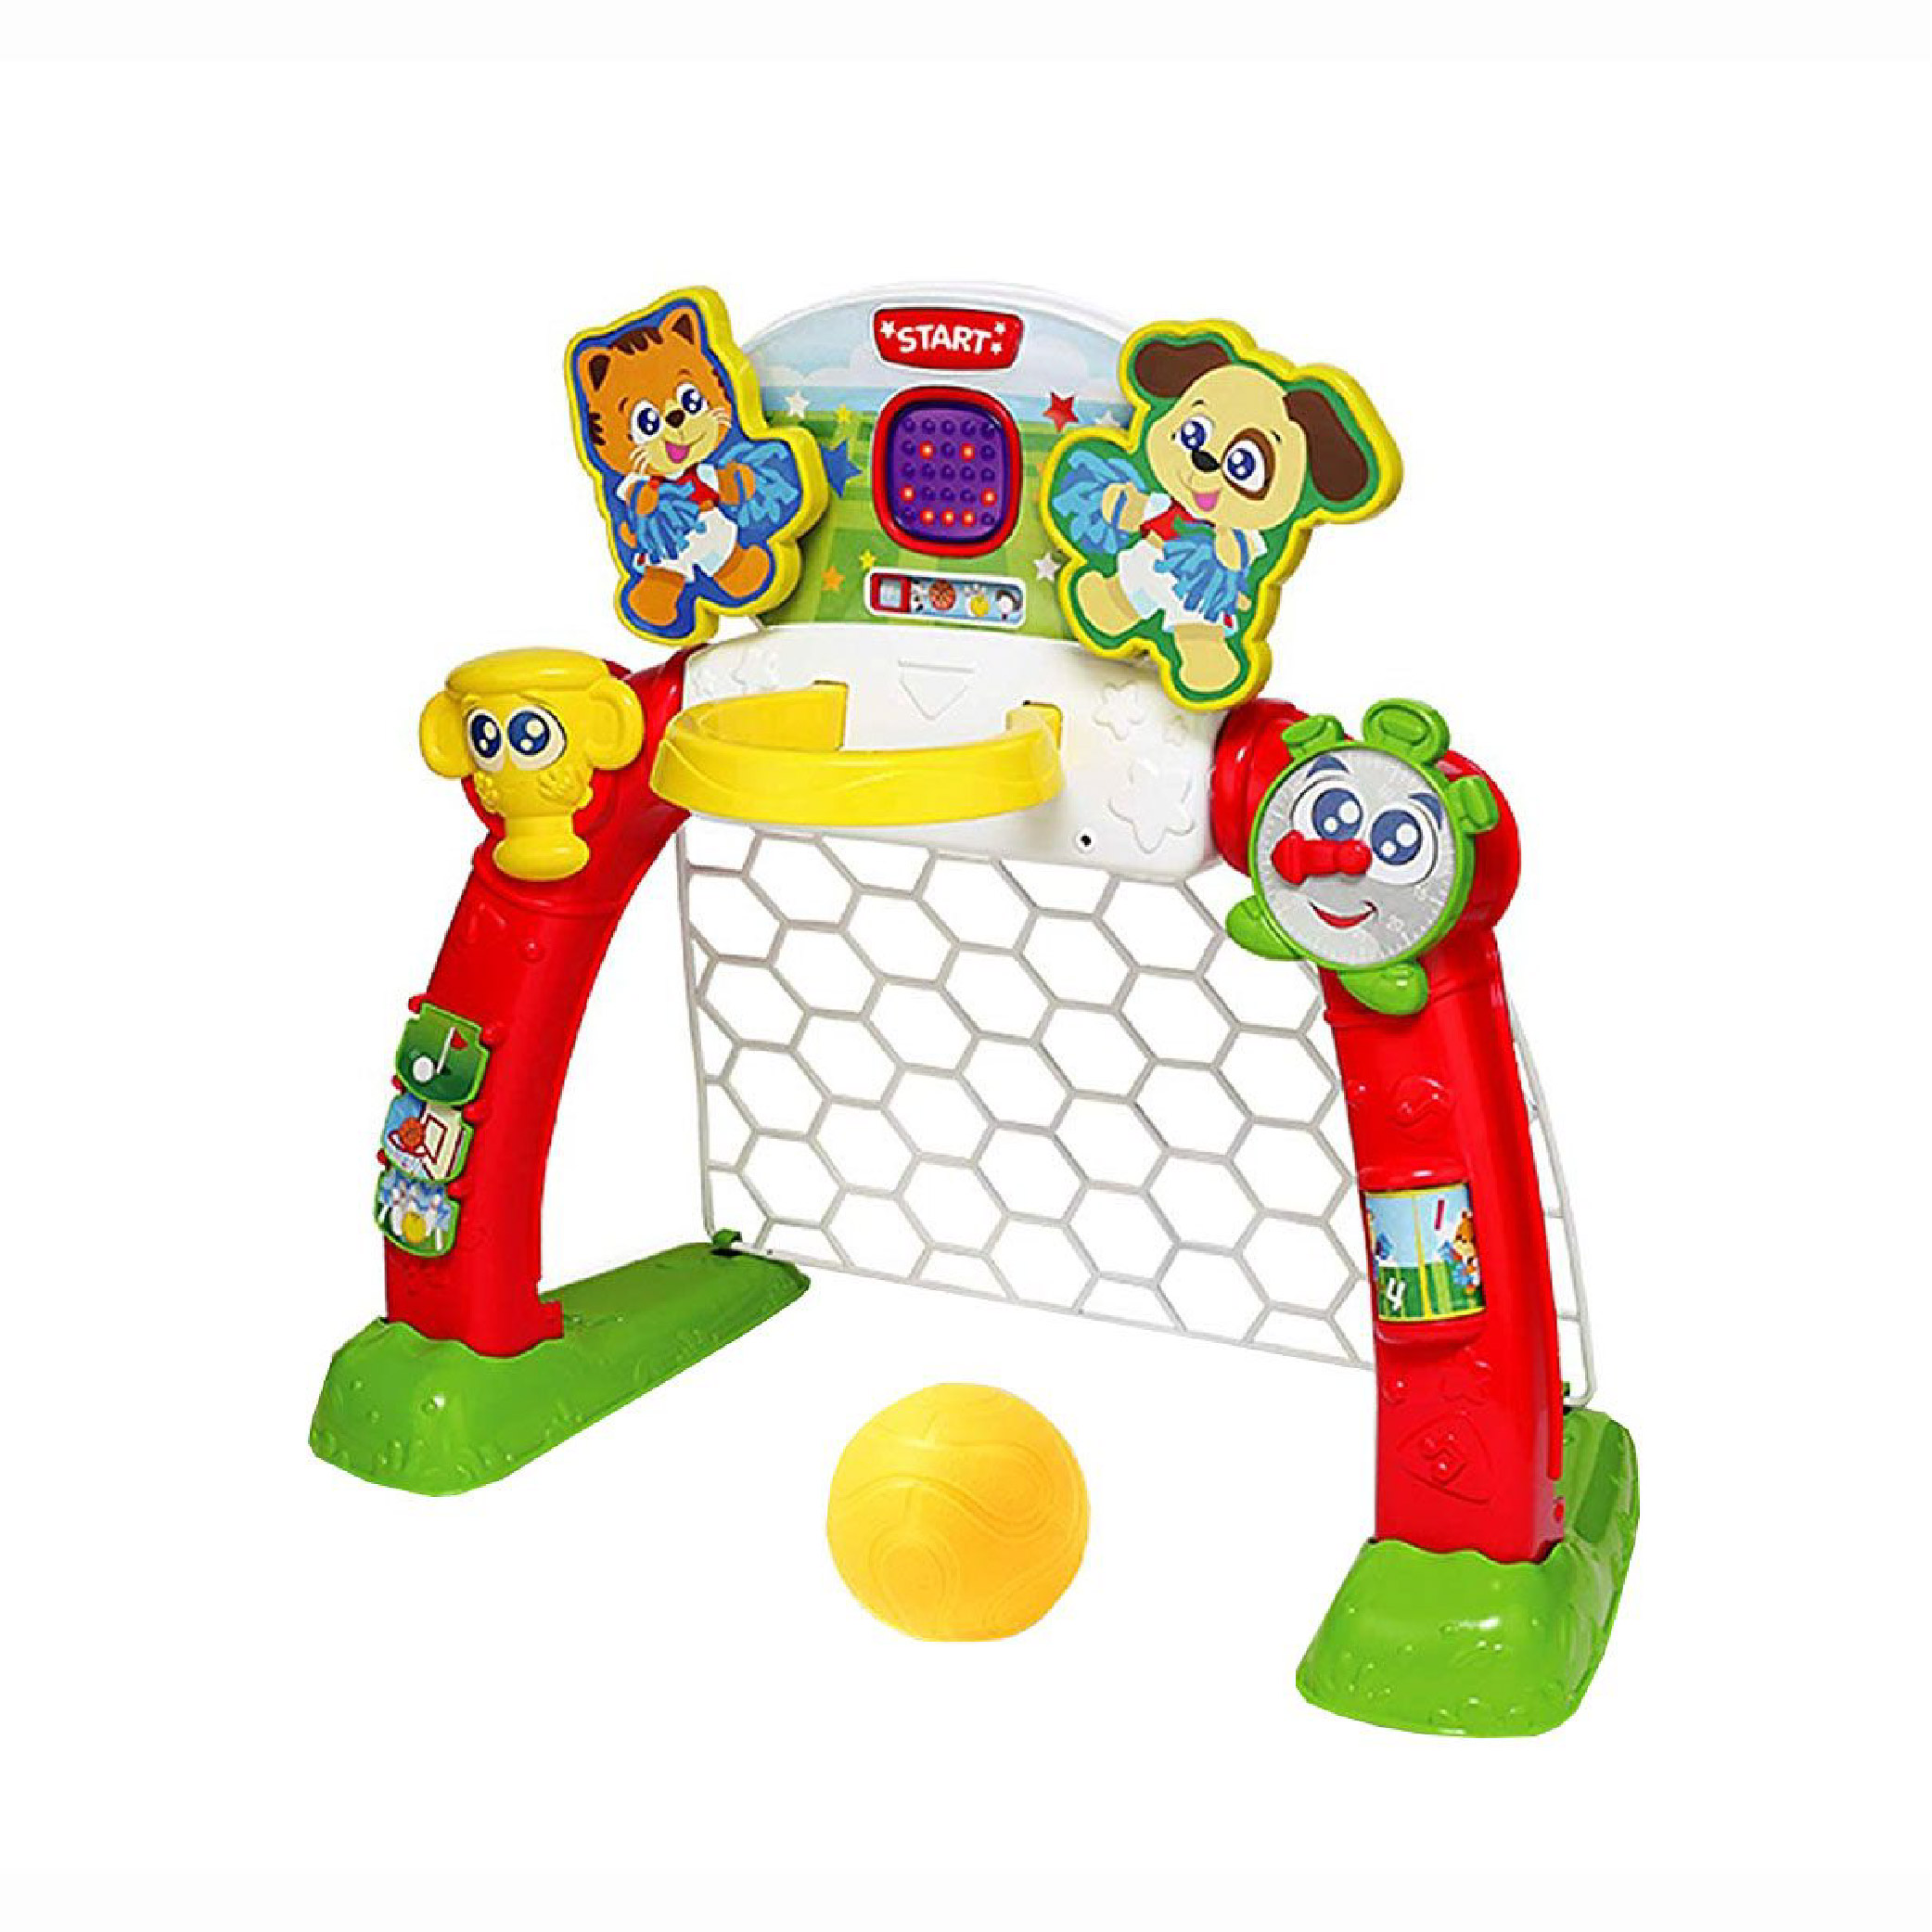 Lot 209_Winfun 4 in 1 Sports Center-1